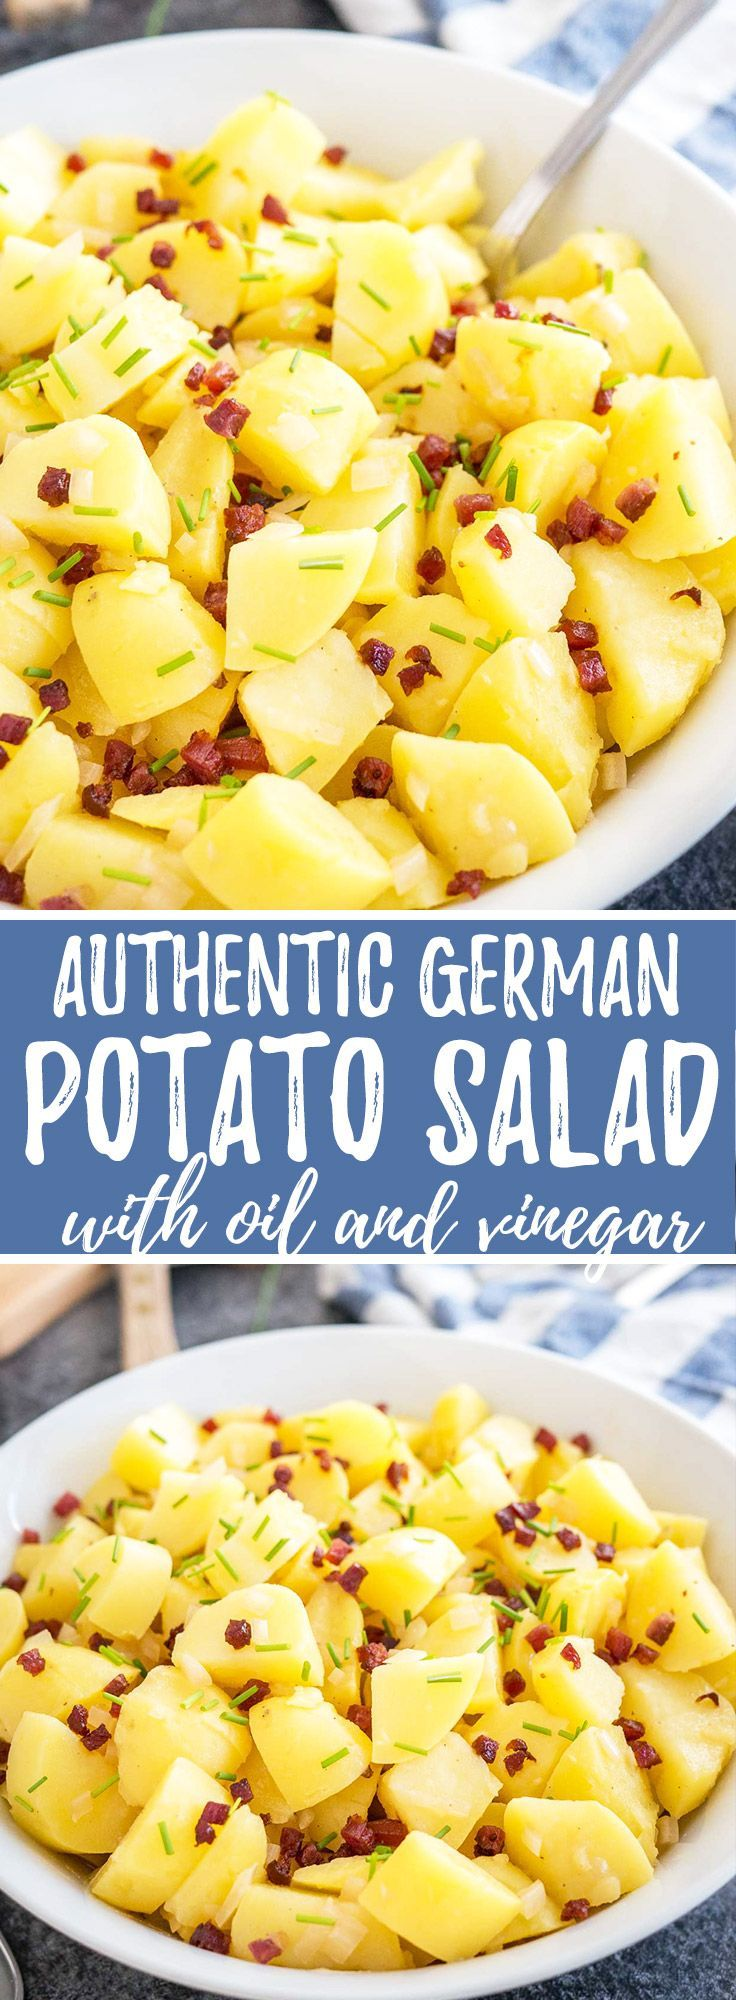 Authentic German Potato Salad is made with vinegar, broth, and oil and can be served warm or cold. A perfect side dish for any occasion, from summer BBQs to potlucks!